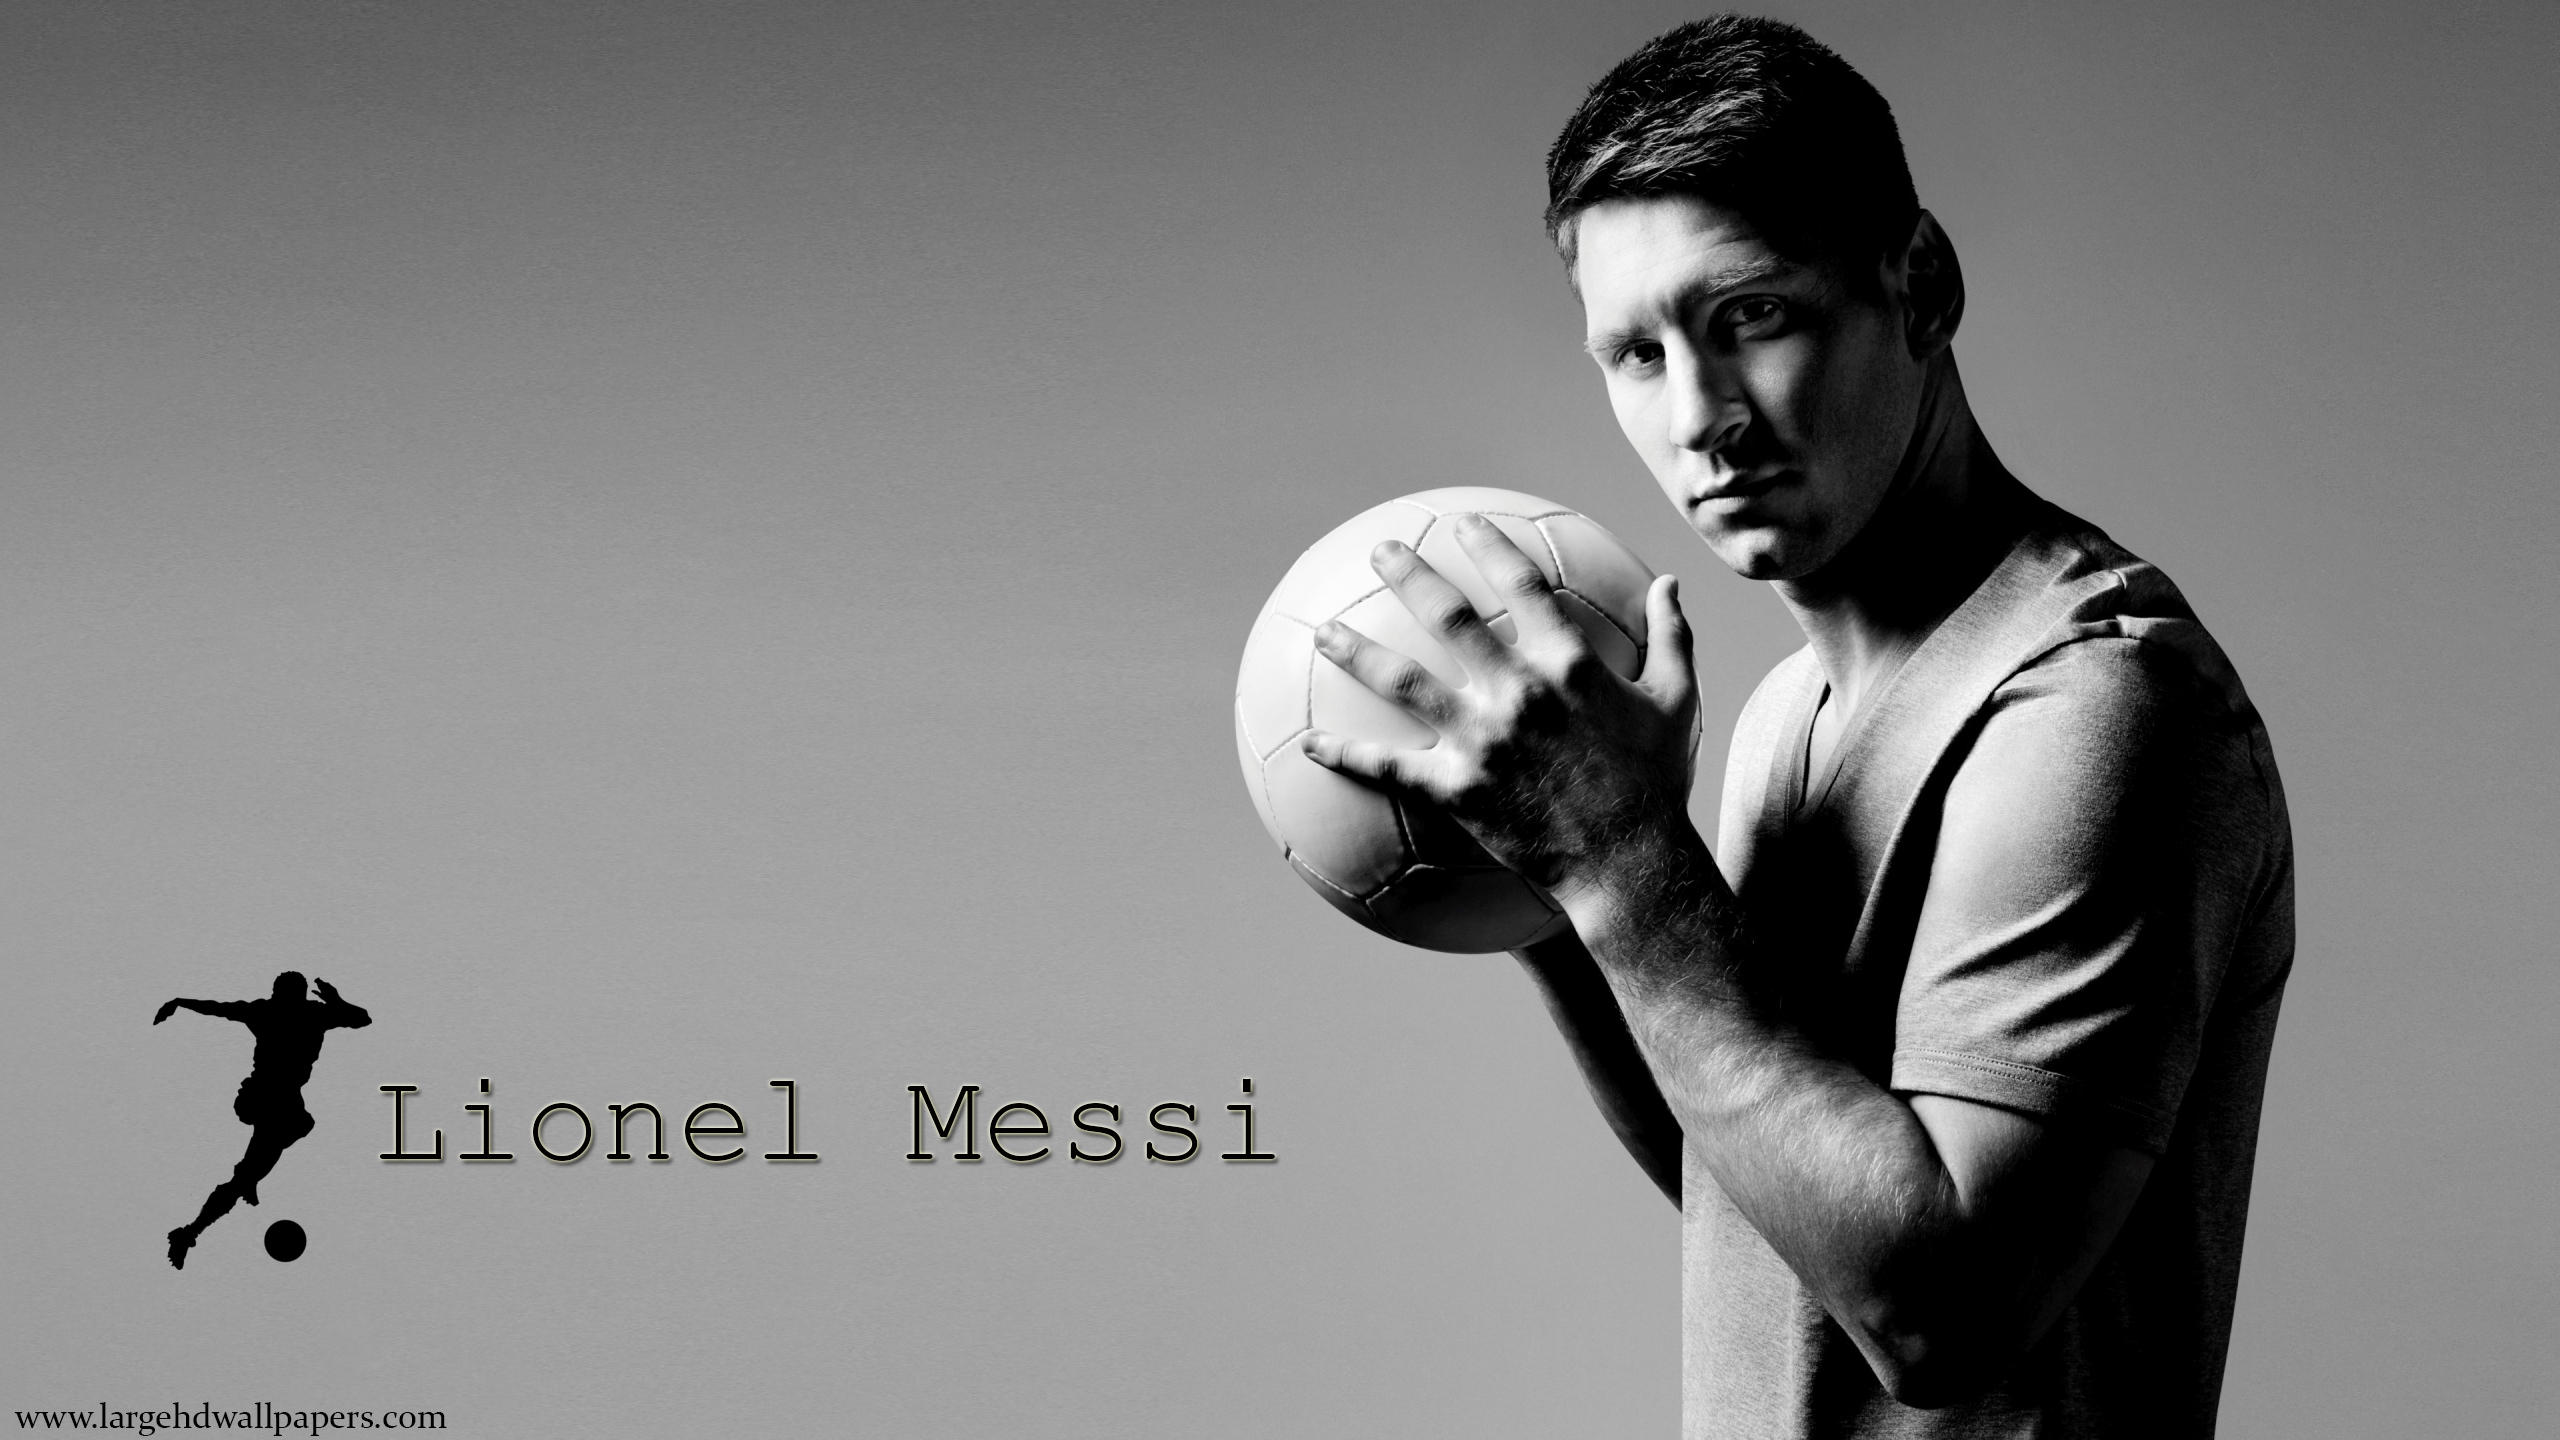 Lionel Messi Hd Wallpapers P Wallpapers Imgstocks Messi Desktop